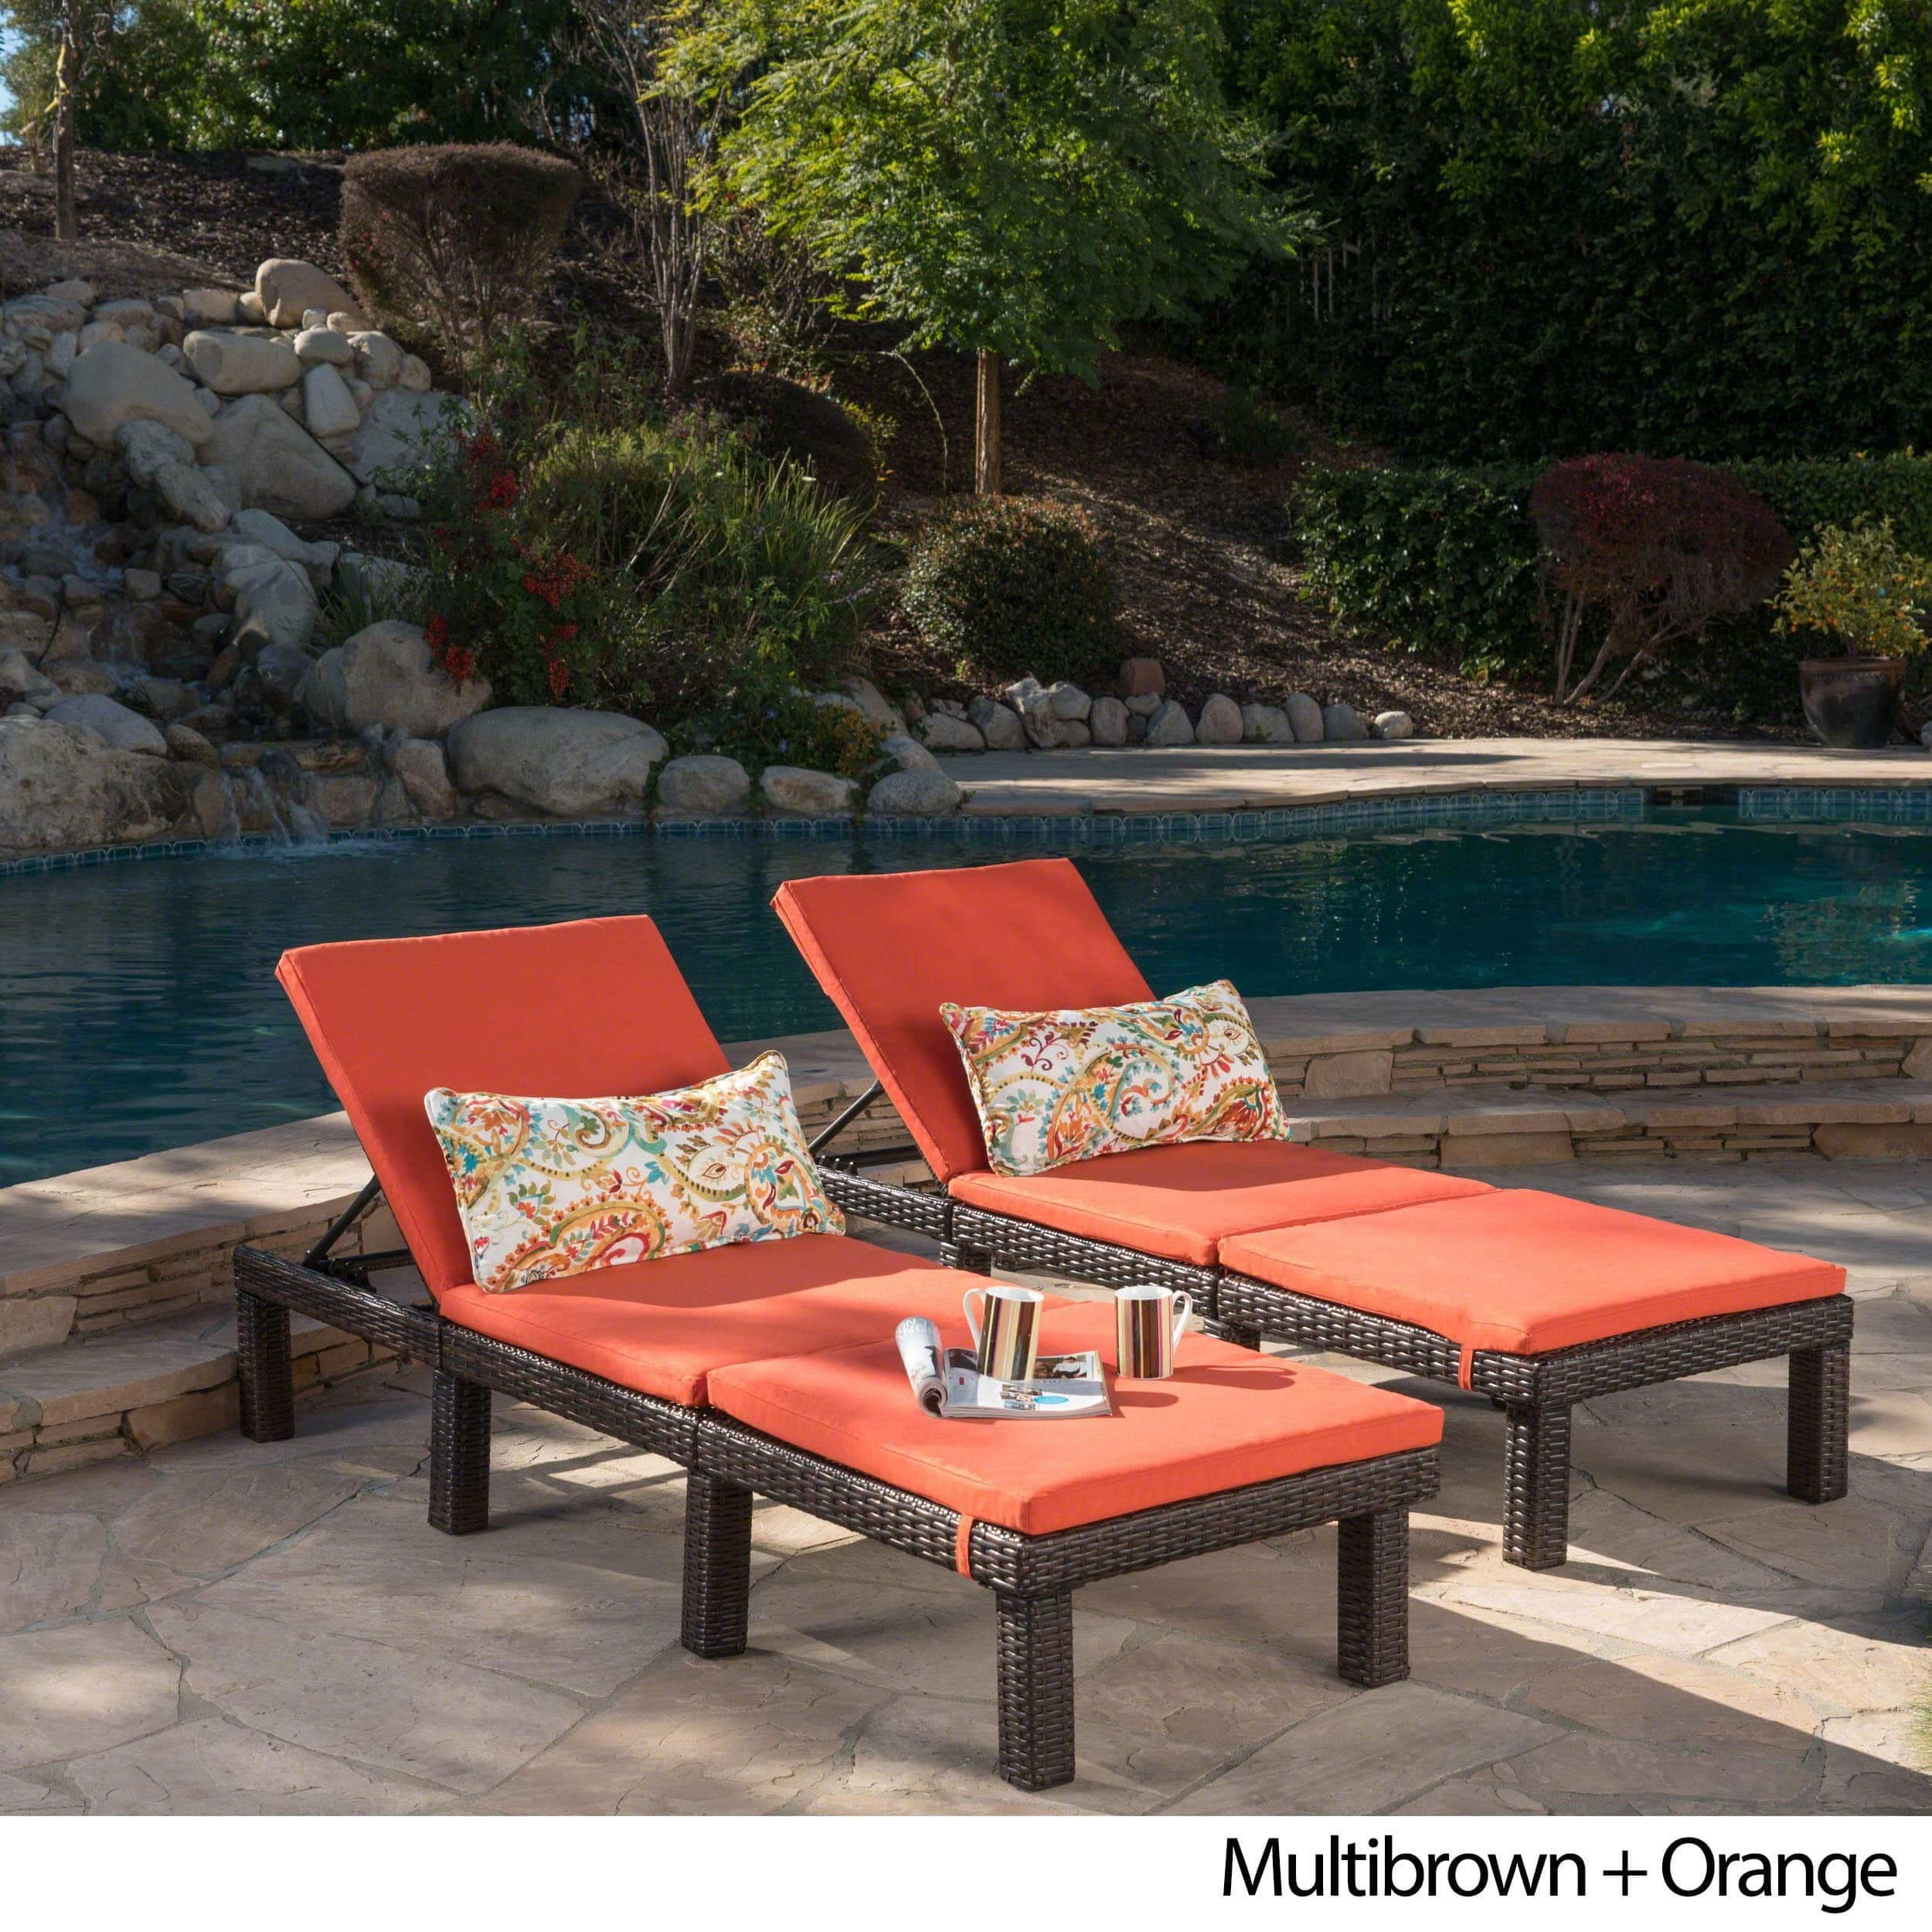 buy chaise lounge buy outdoor chaise lounges online at overstock com our 11811 | Jamaica Outdoor Chaise Lounge with Cushion Set of 2 by Christopher Knight Home f0df545e d74a 4f0a a578 3ddad069cadc